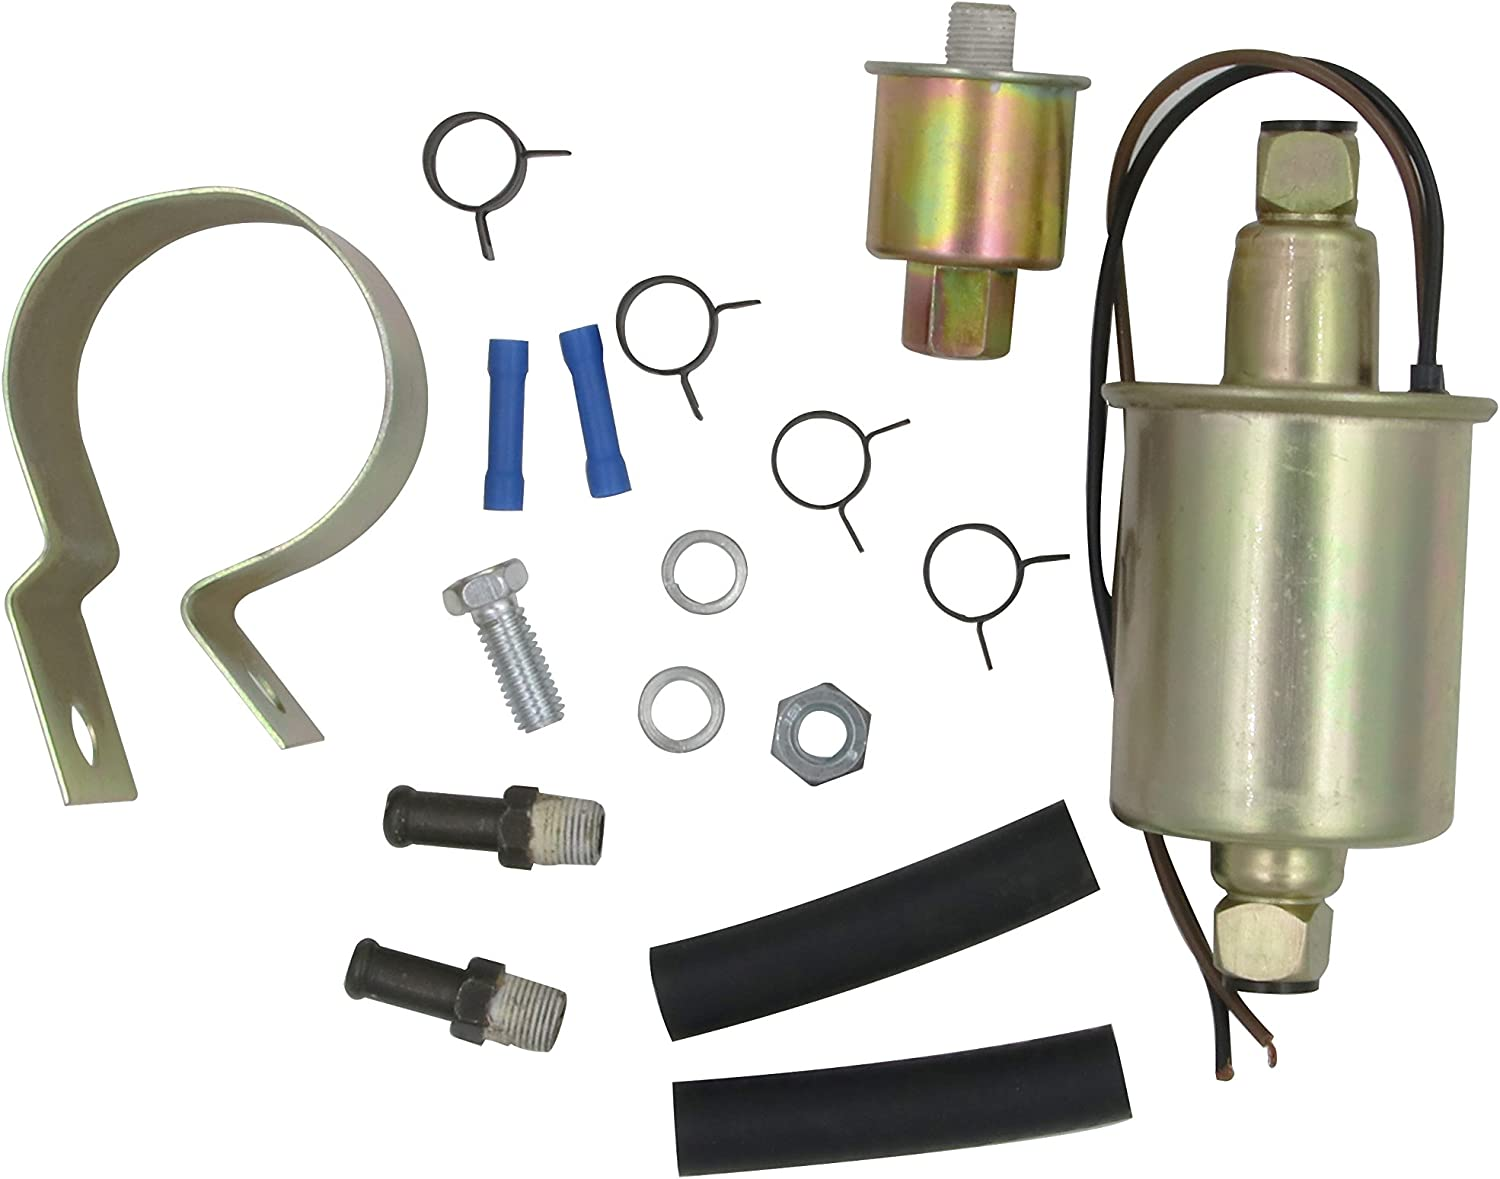 CUSTONEPARTS New Universal 12v 5-9 PSI 5/16 inch In Line External Electric Fuel Pump w/Installation Kit E8012S P60430 EP12S (2 Wire)